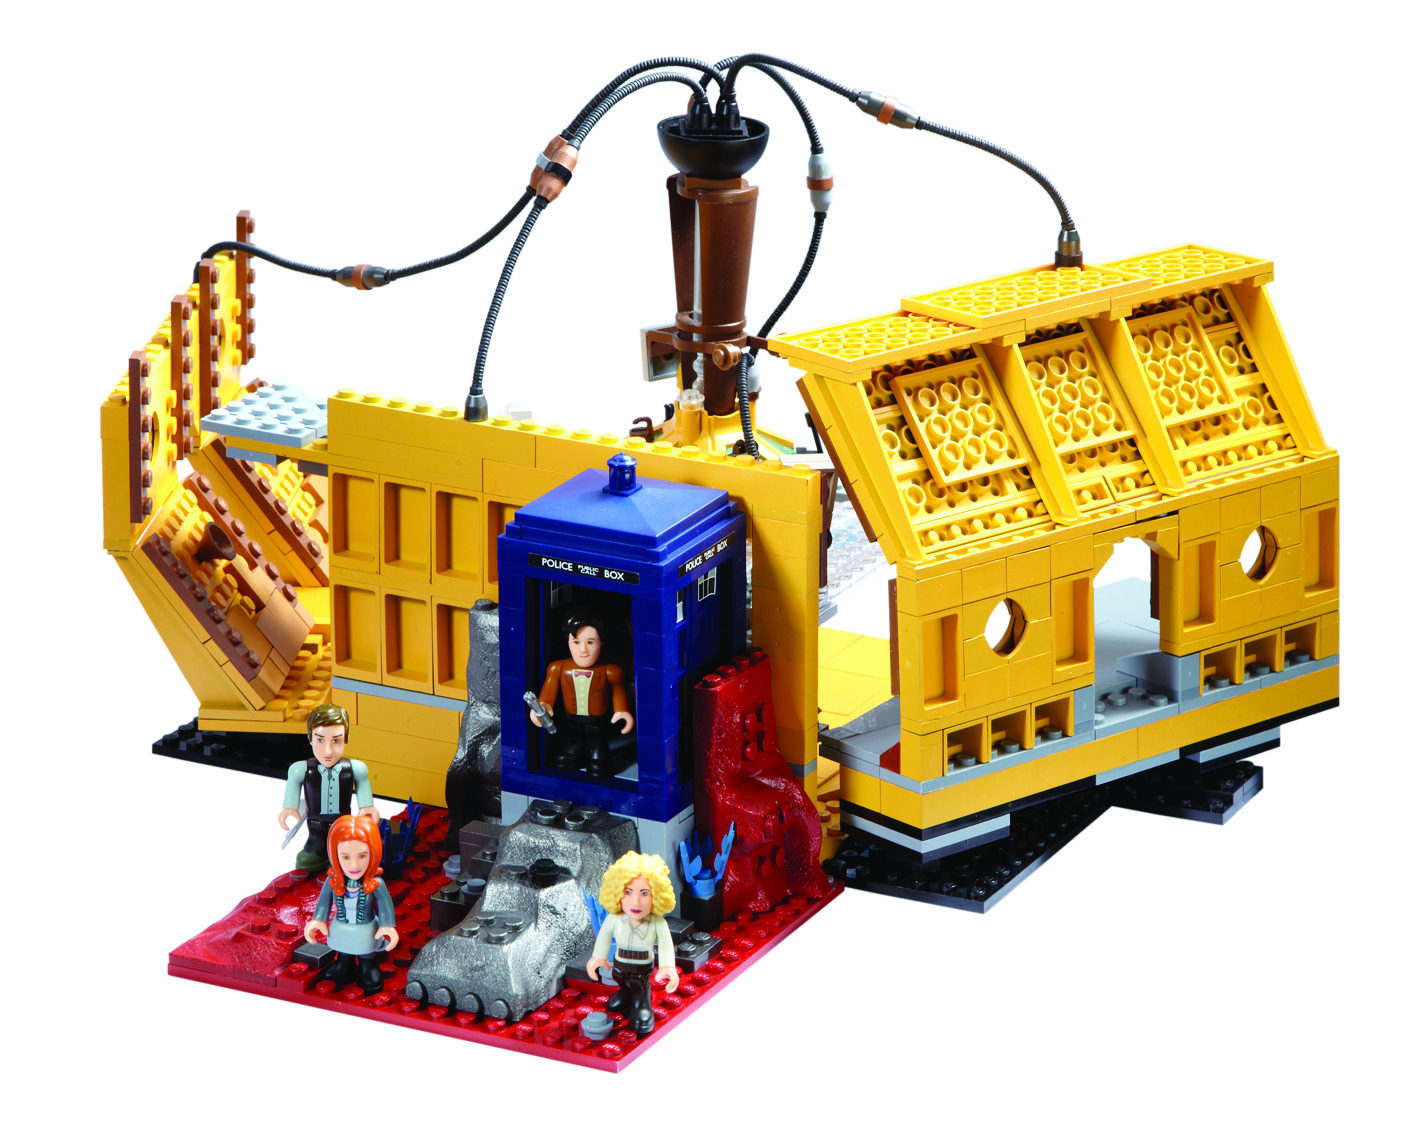 DOCTOR WHO CHAR BUILDING TARDIS CONSOLE ROOM SET